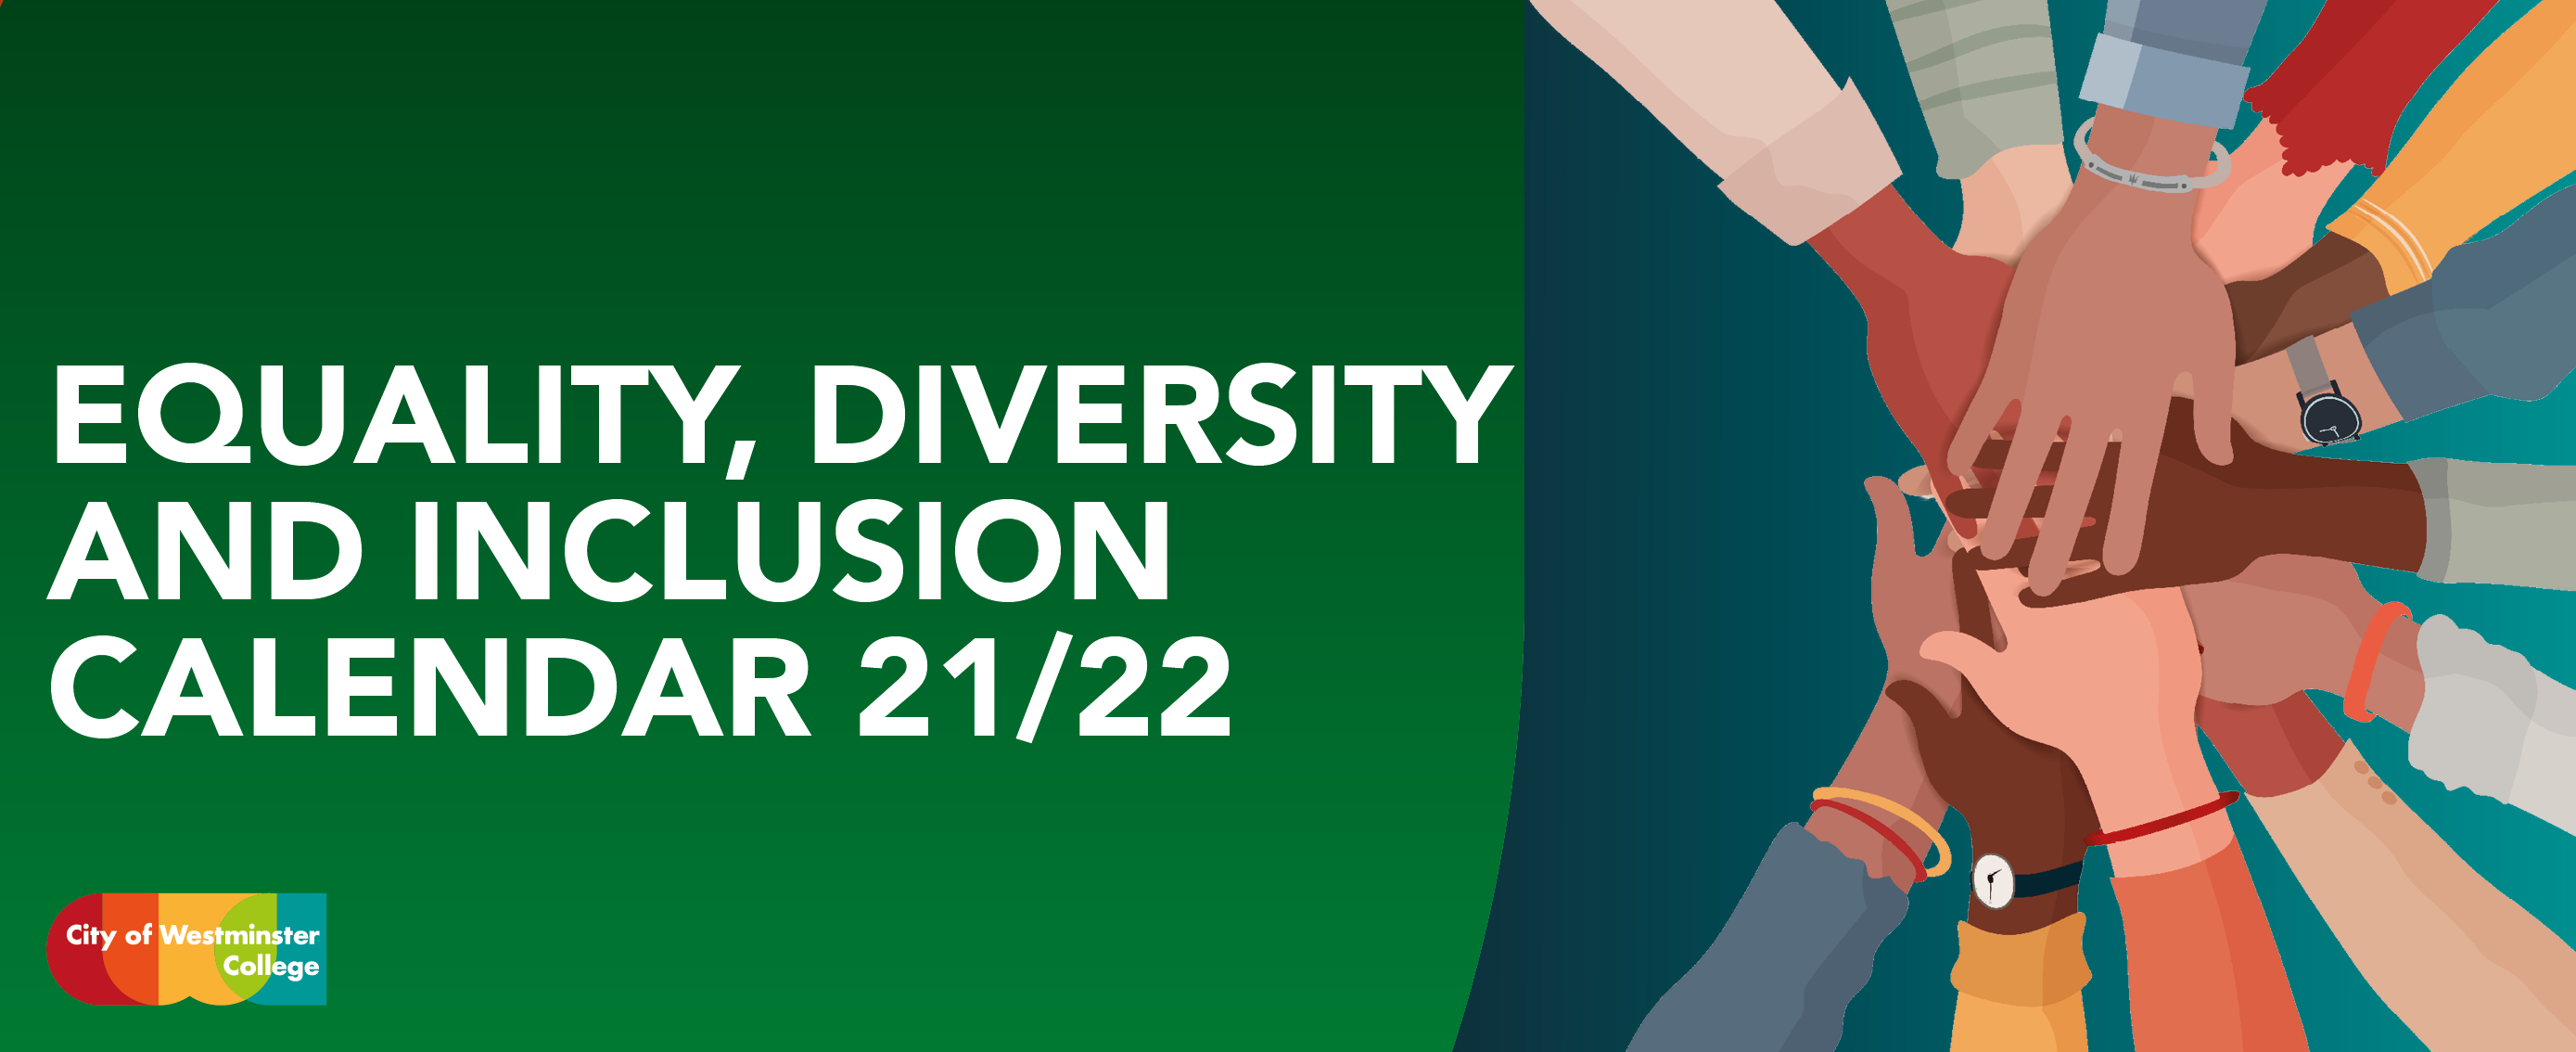 2021-09-08 Equality and Diversity Inclusion